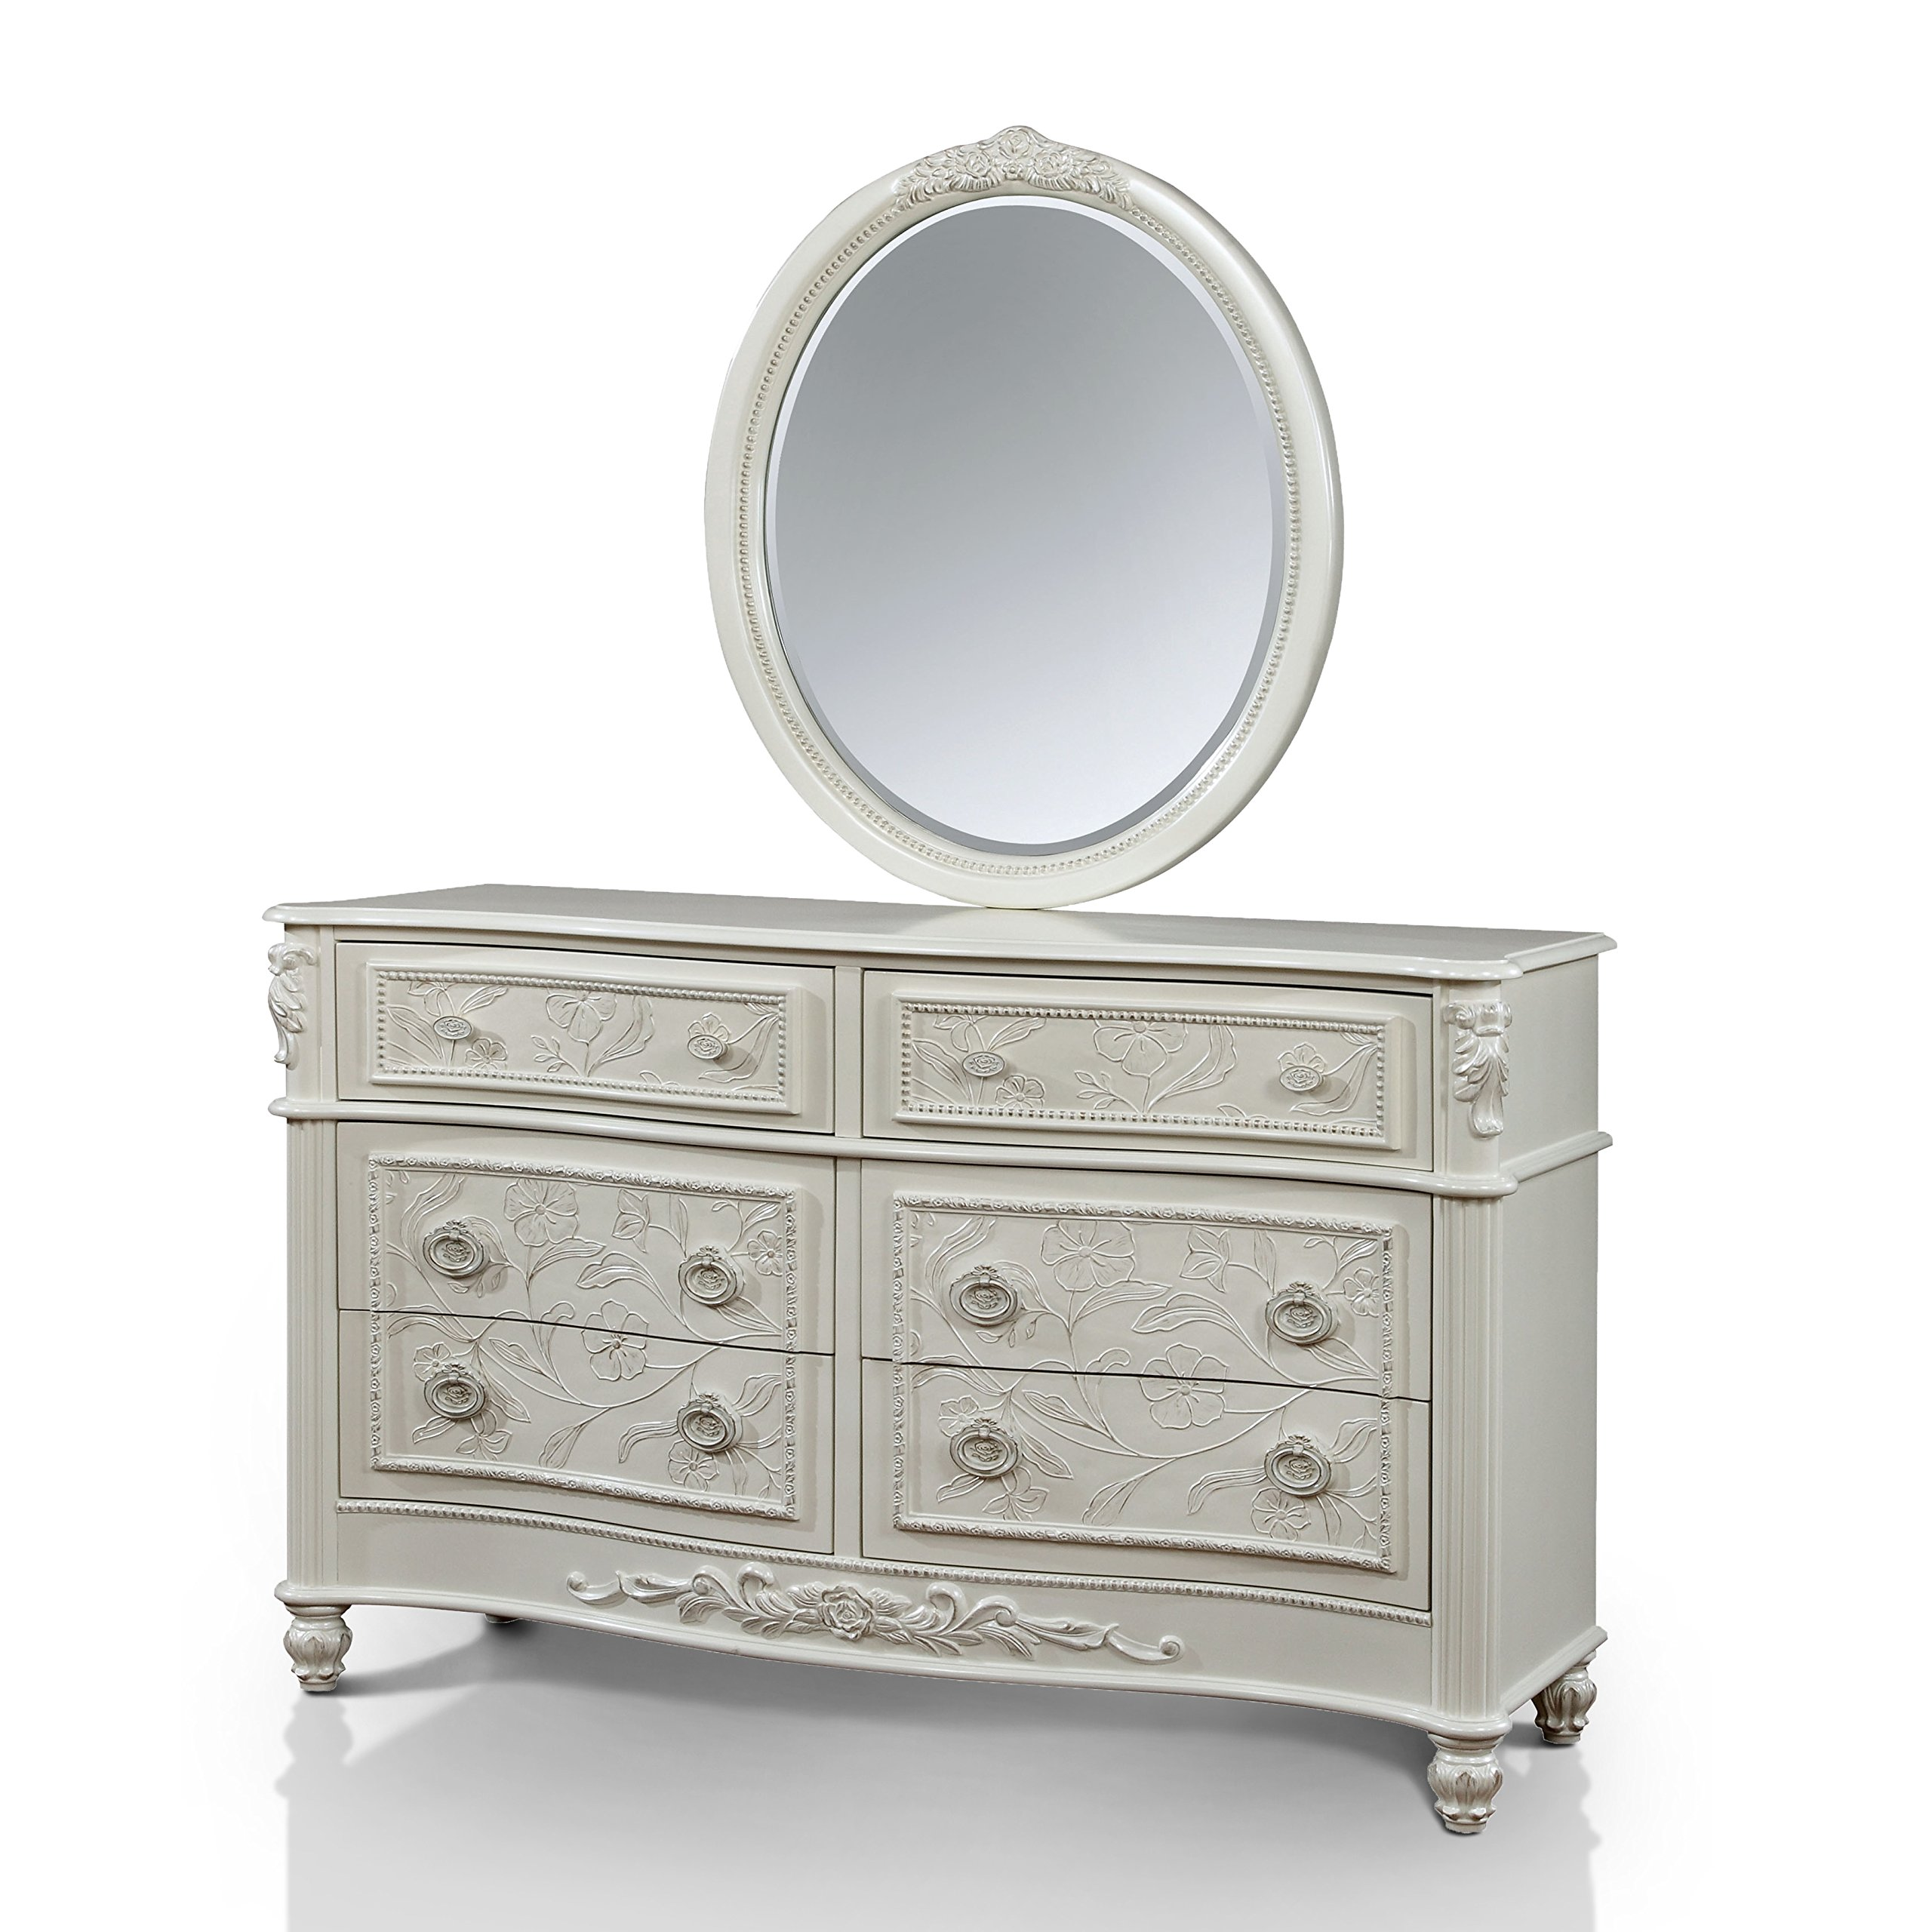 Furniture of America Margie Traditional 2-piece Elegant Fairy Tale Style White Dresser and Mirror Set by Furniture of America